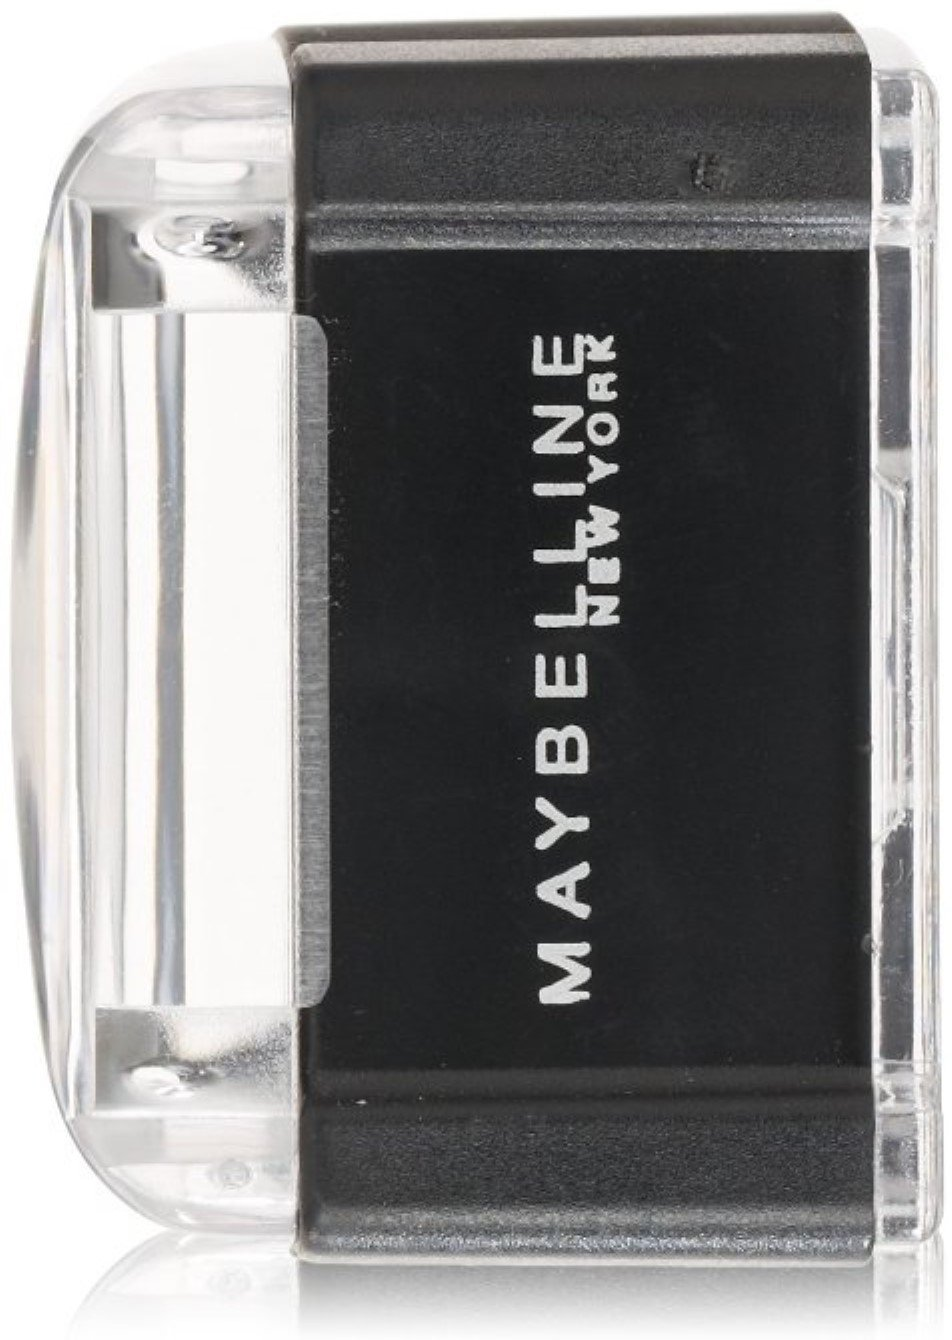 Amazon.com : Maybelline New York Expert Tools, Dual Sharpener : Makeup Sharpeners : Beauty